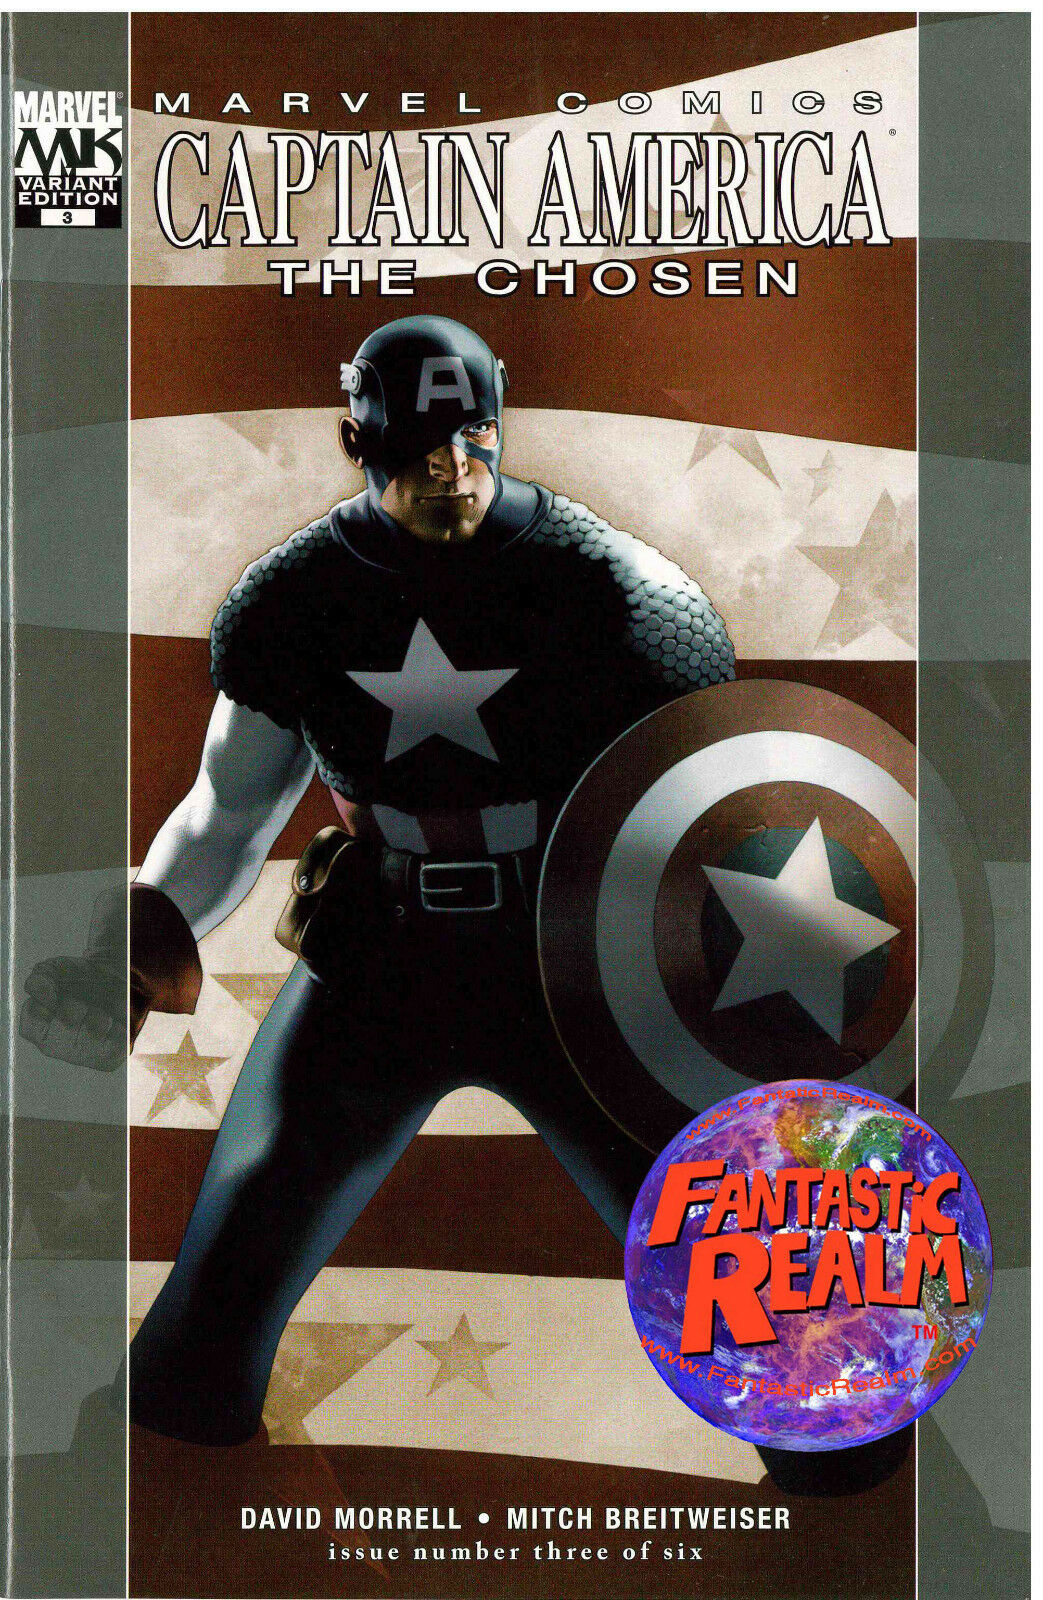 CAPTAIN AMERICA #3: THE CHOSEN VARIANT EDITION (2007) MARVEL COMICS